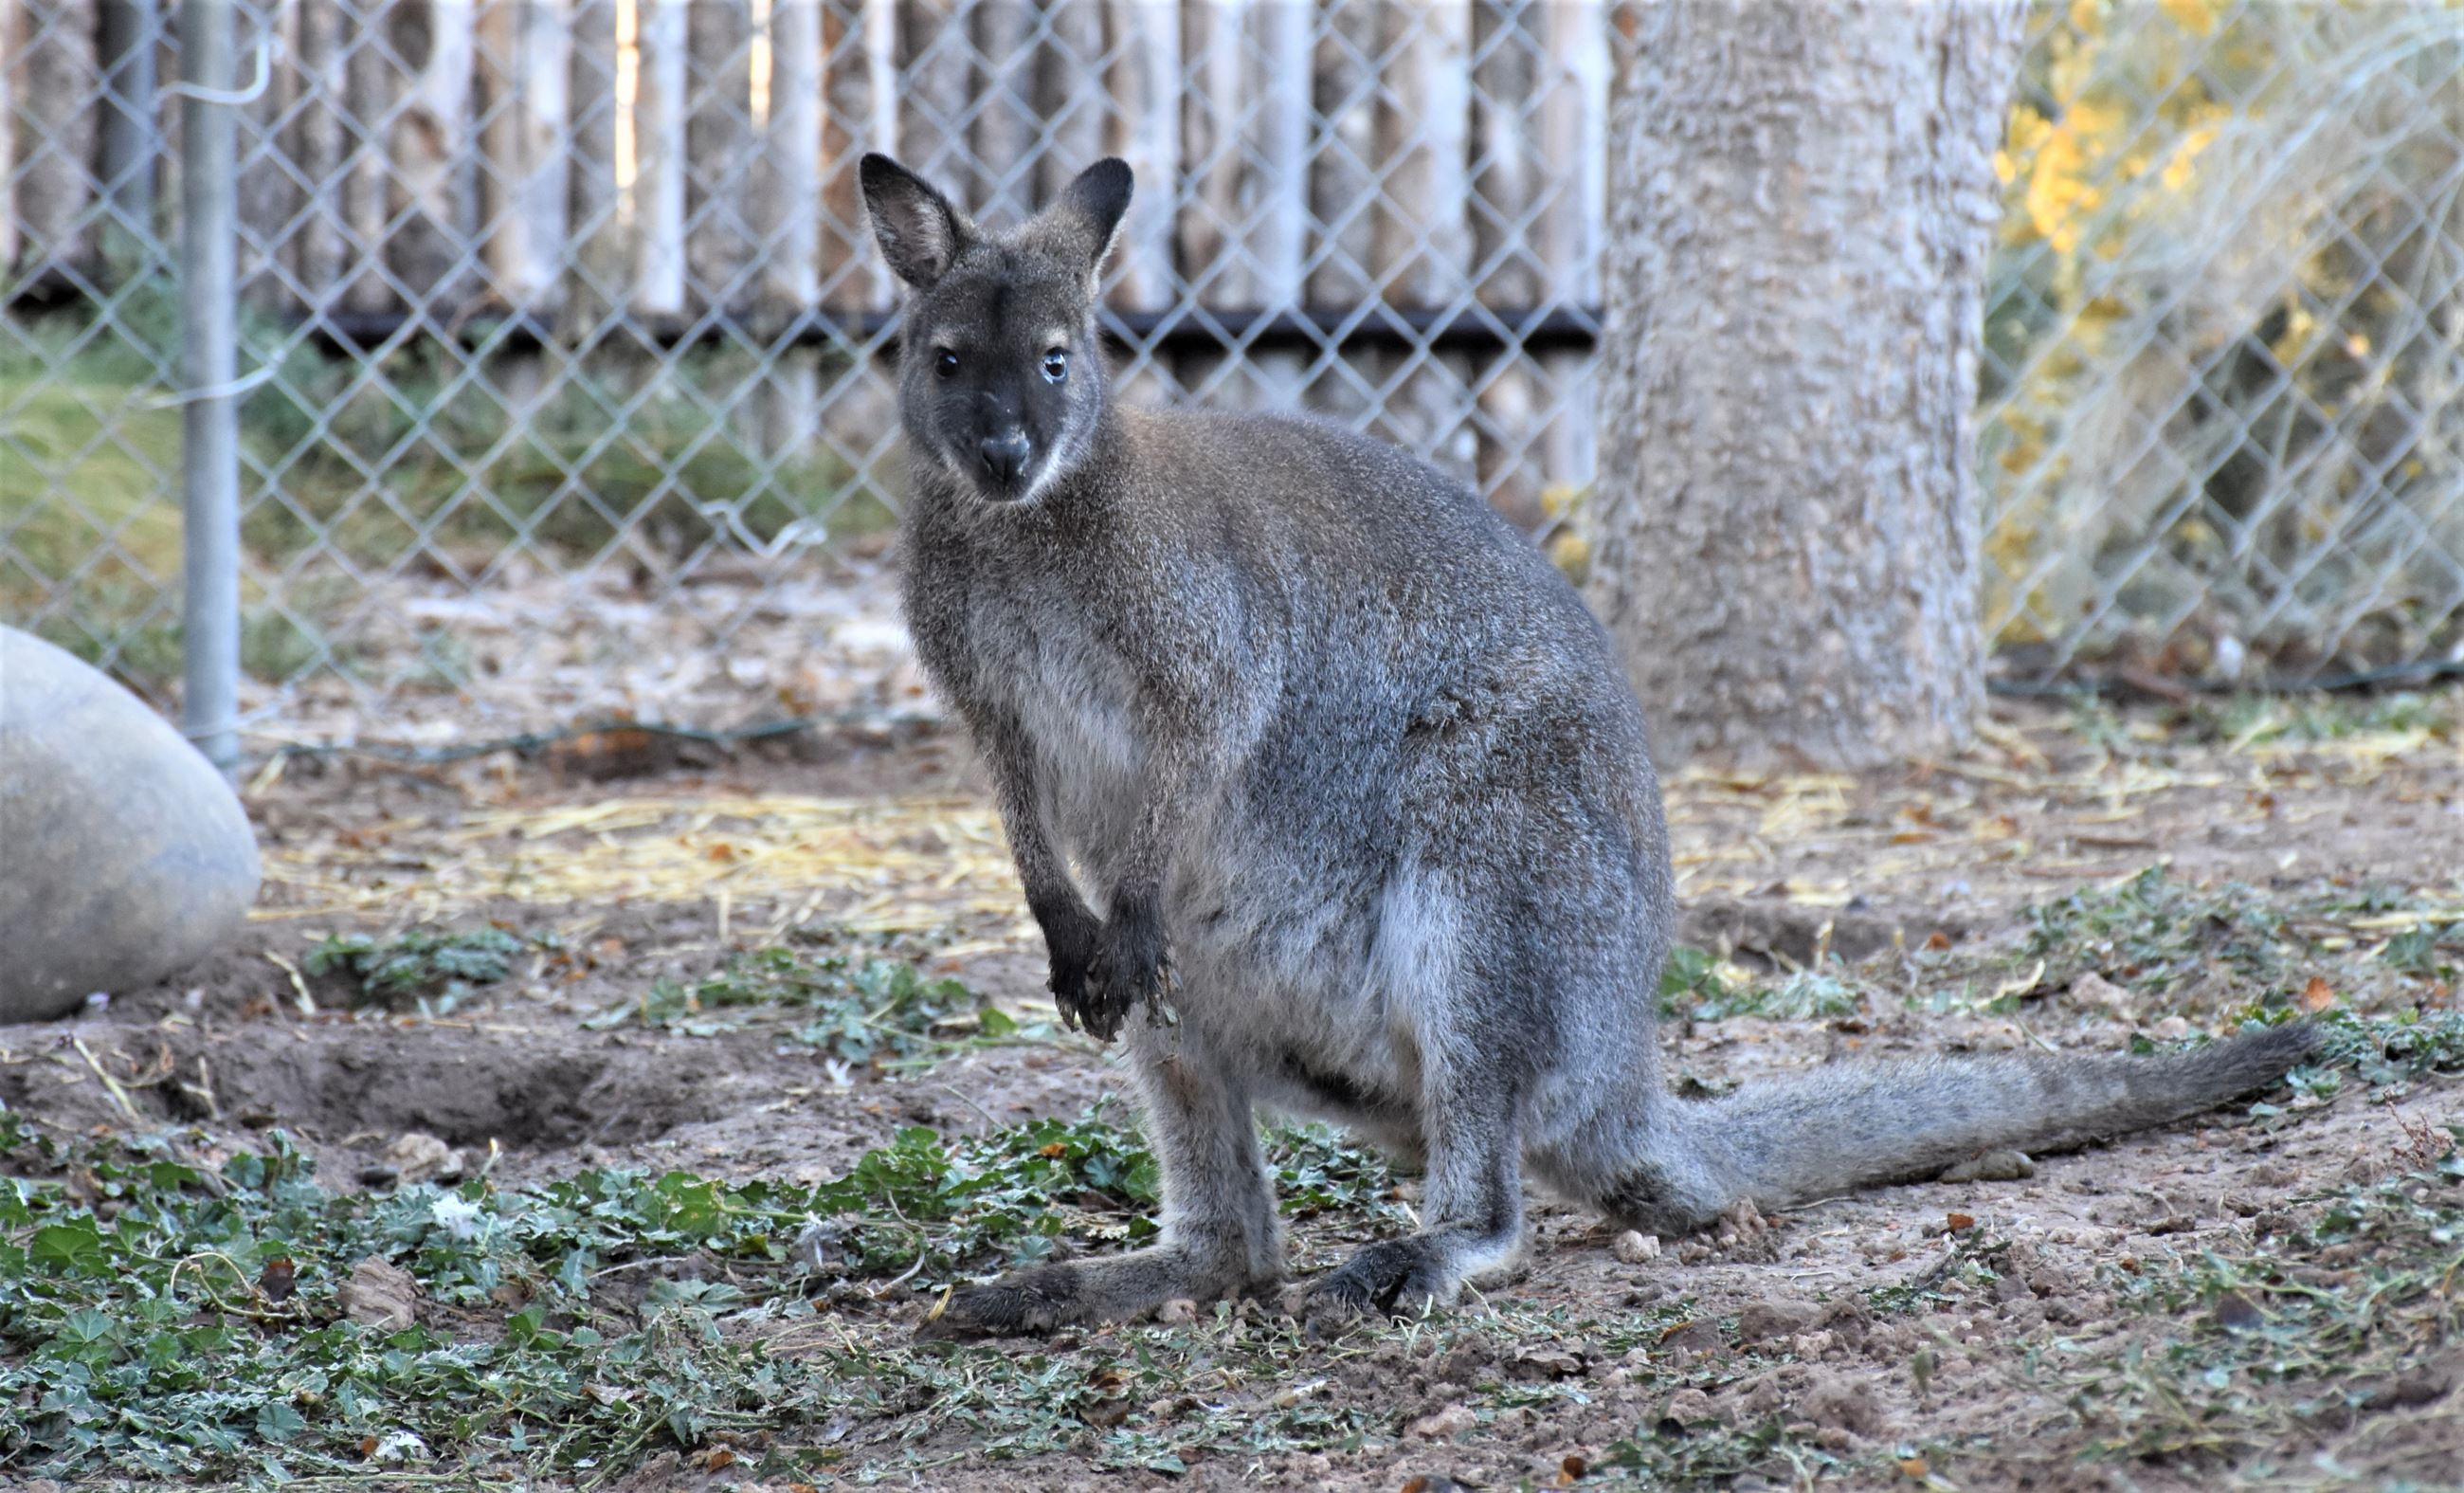 Wallaby (named Chashew) at zoo